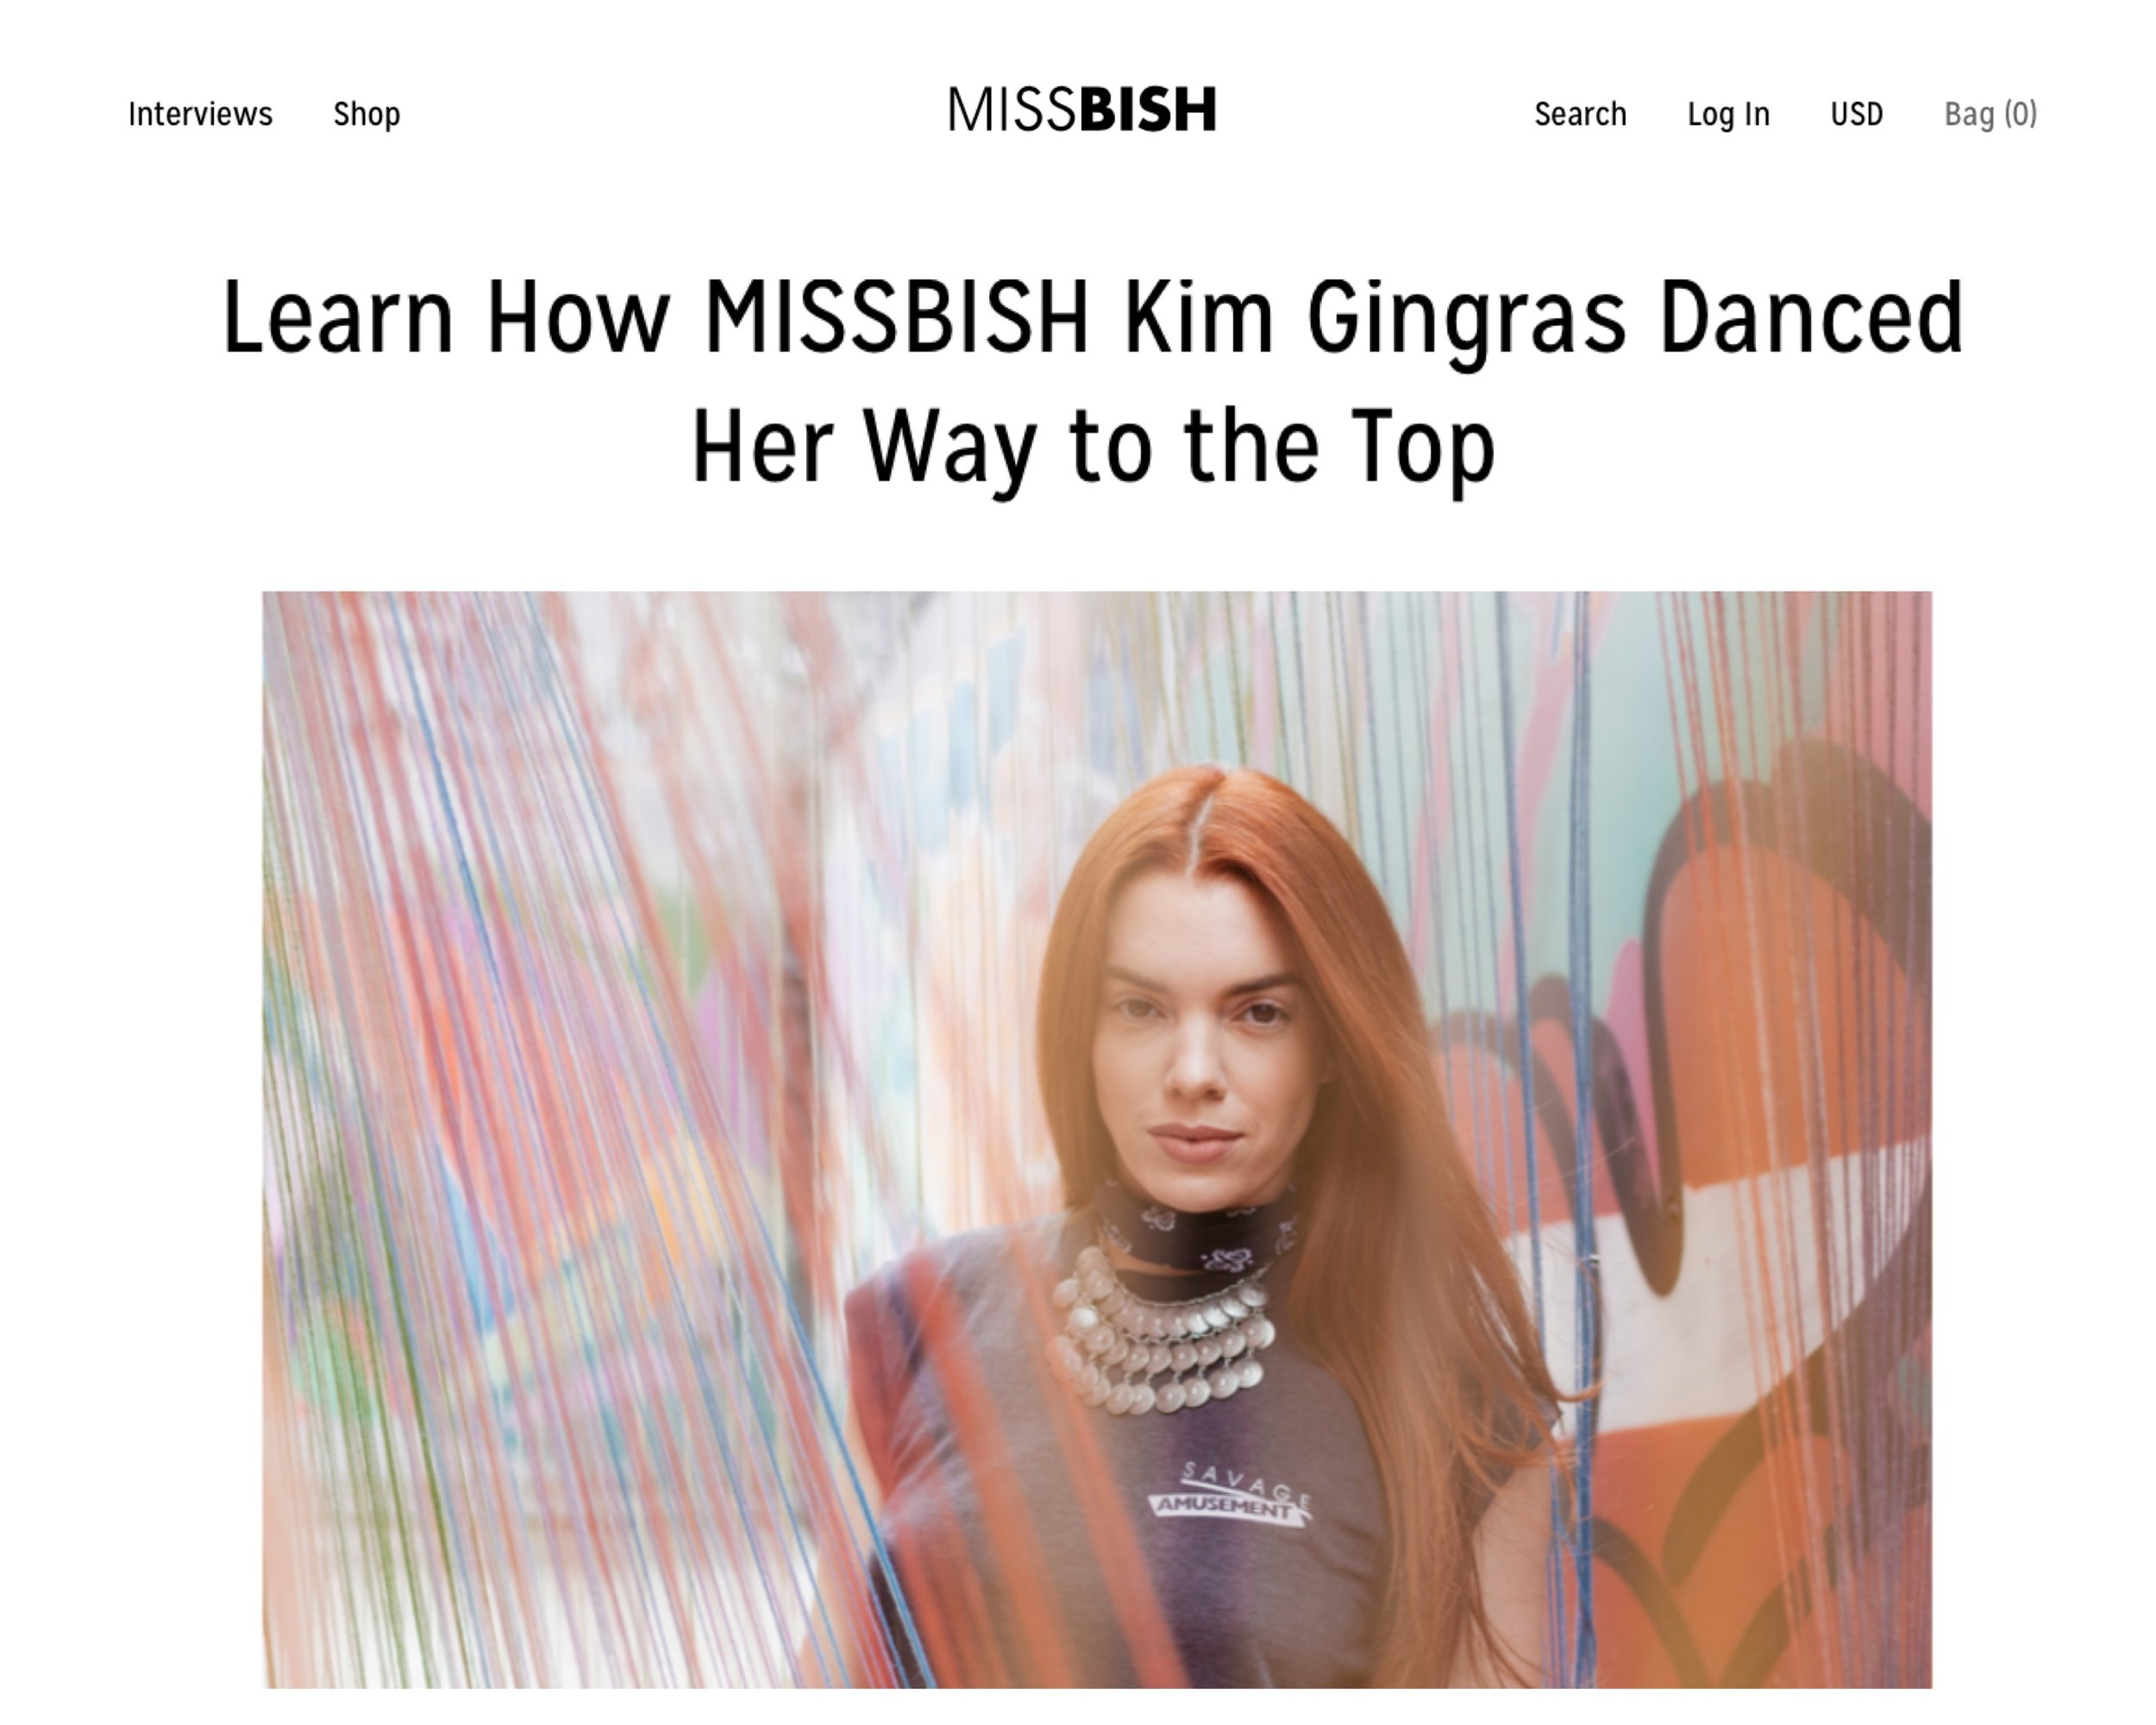 """MISSBISH - """"Kim Gingras in three words? Graceful, passionate and a MISSBISH. Gingras has been through rigorous dance training throughout her life that has helped shape the strong mindset that she has today. Read the interview below to learn more about her struggles and triumphs."""" - Anna Maconachy"""